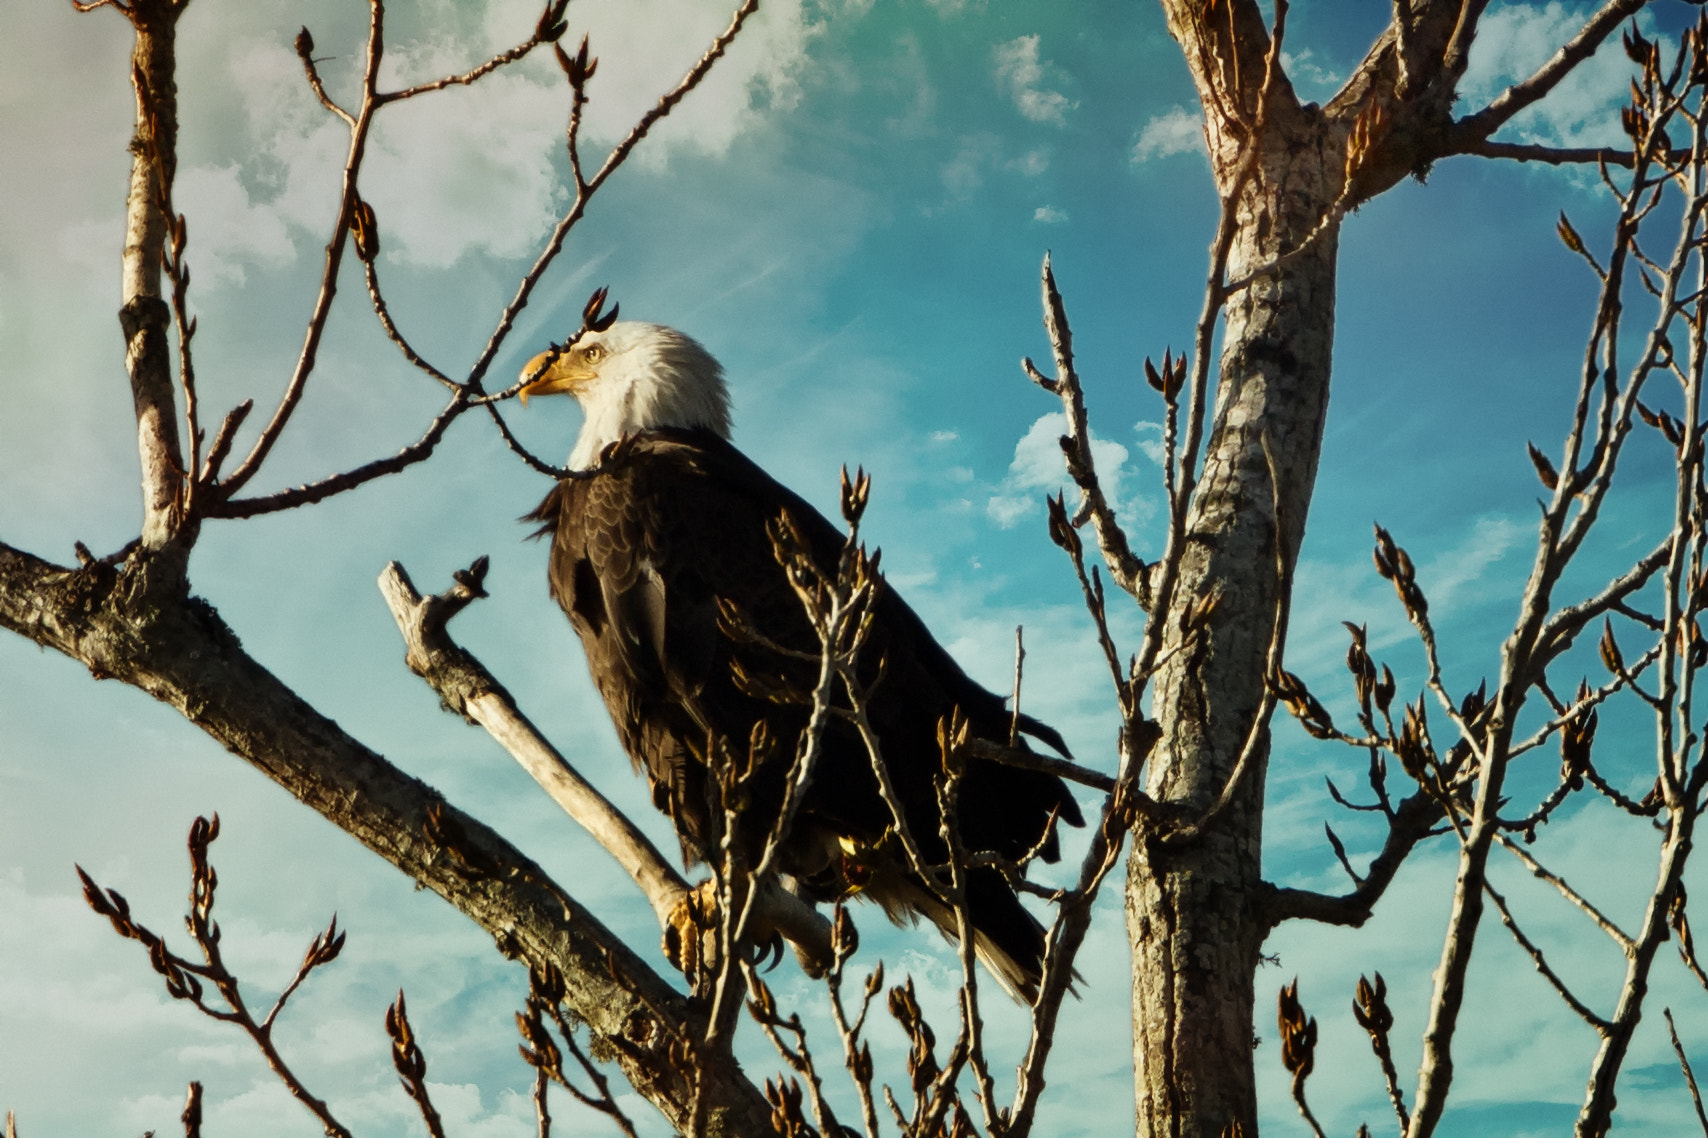 Photograph Bald Eagle by Darrell Miller on 500px